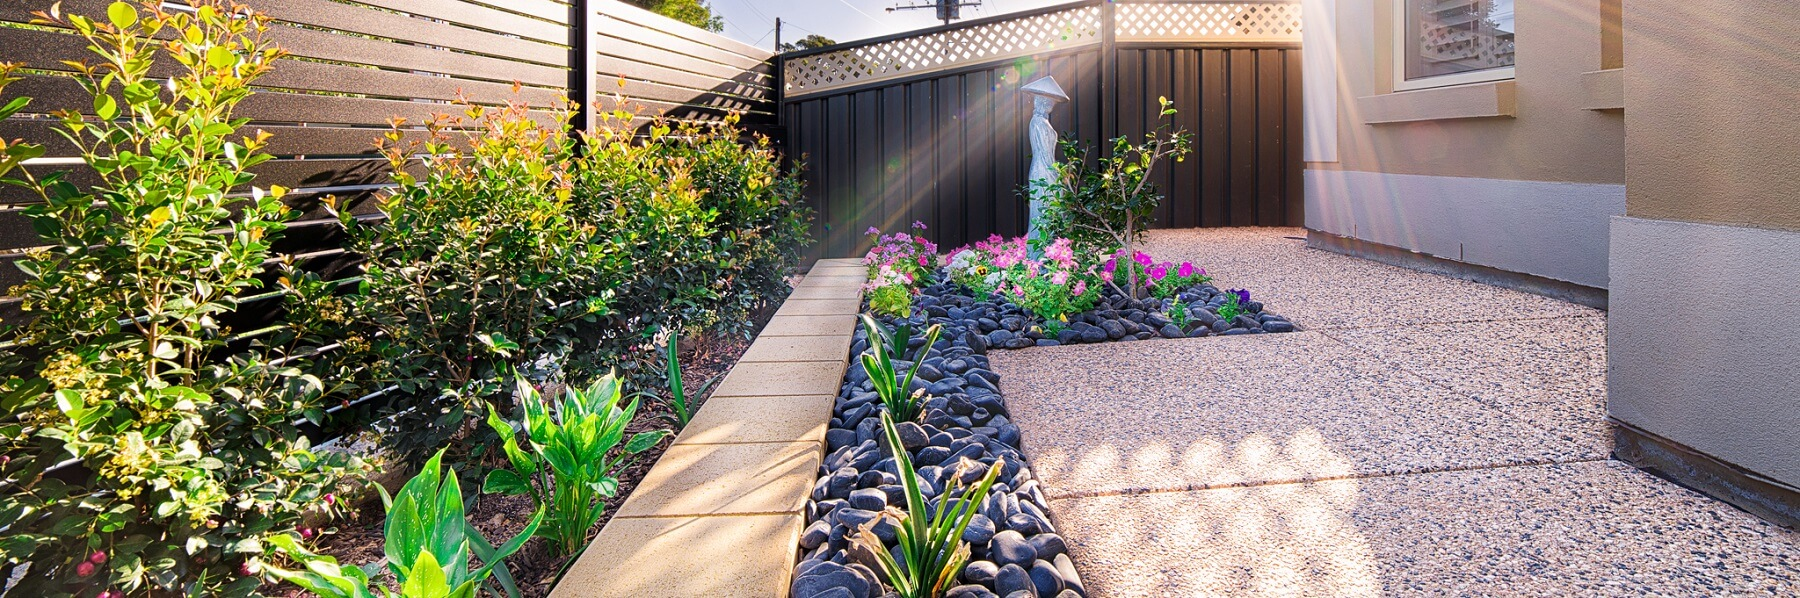 Freeman Landscaping Adelaide, Home Page Slider